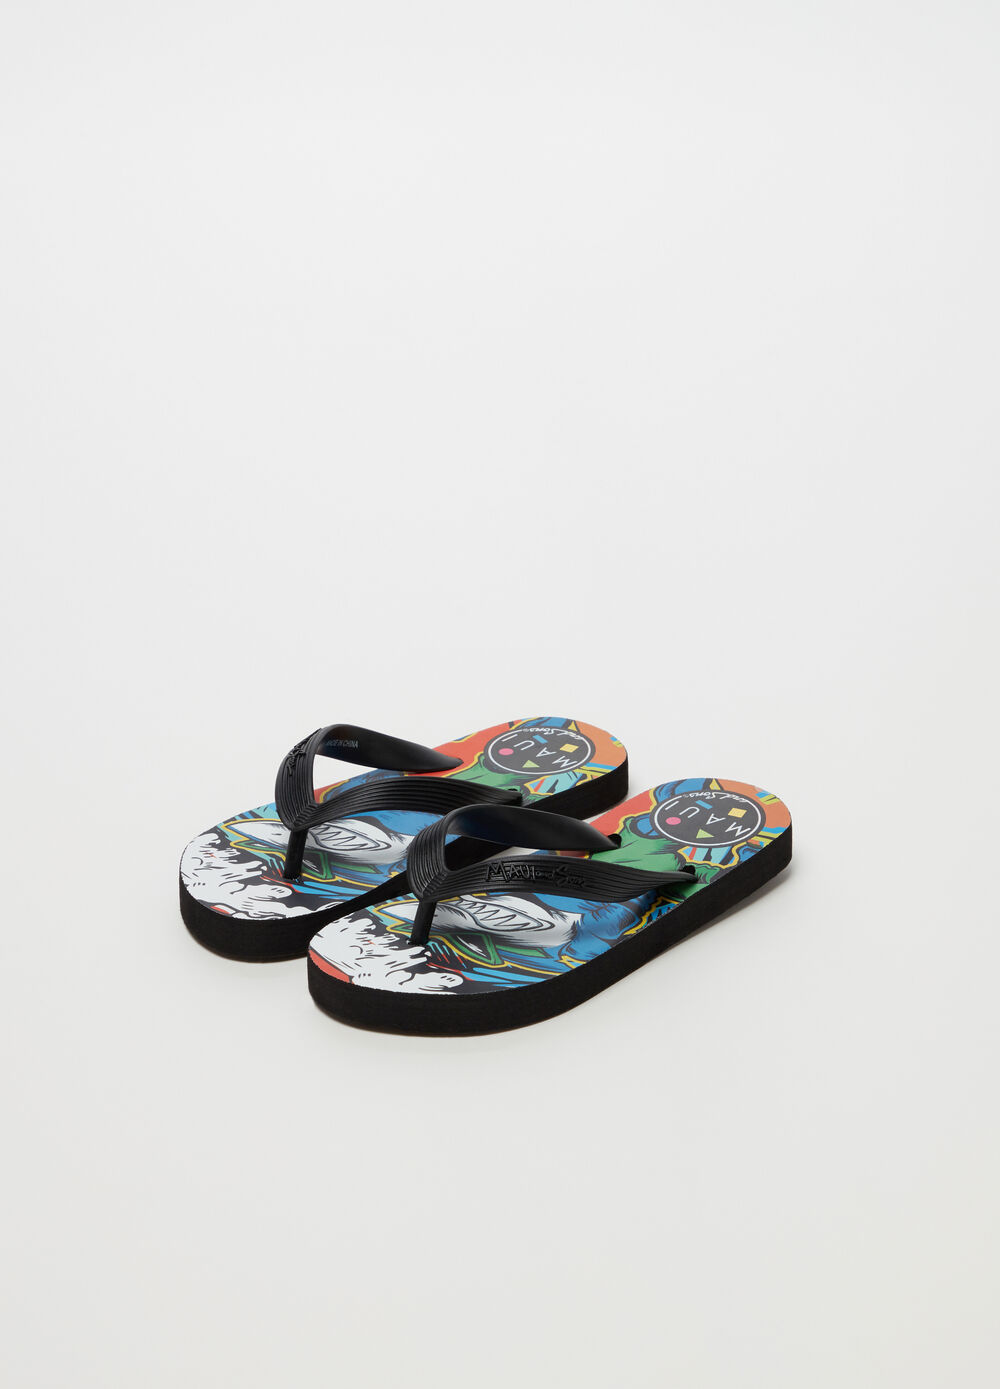 Shark man print flip flops by Maui and Sons